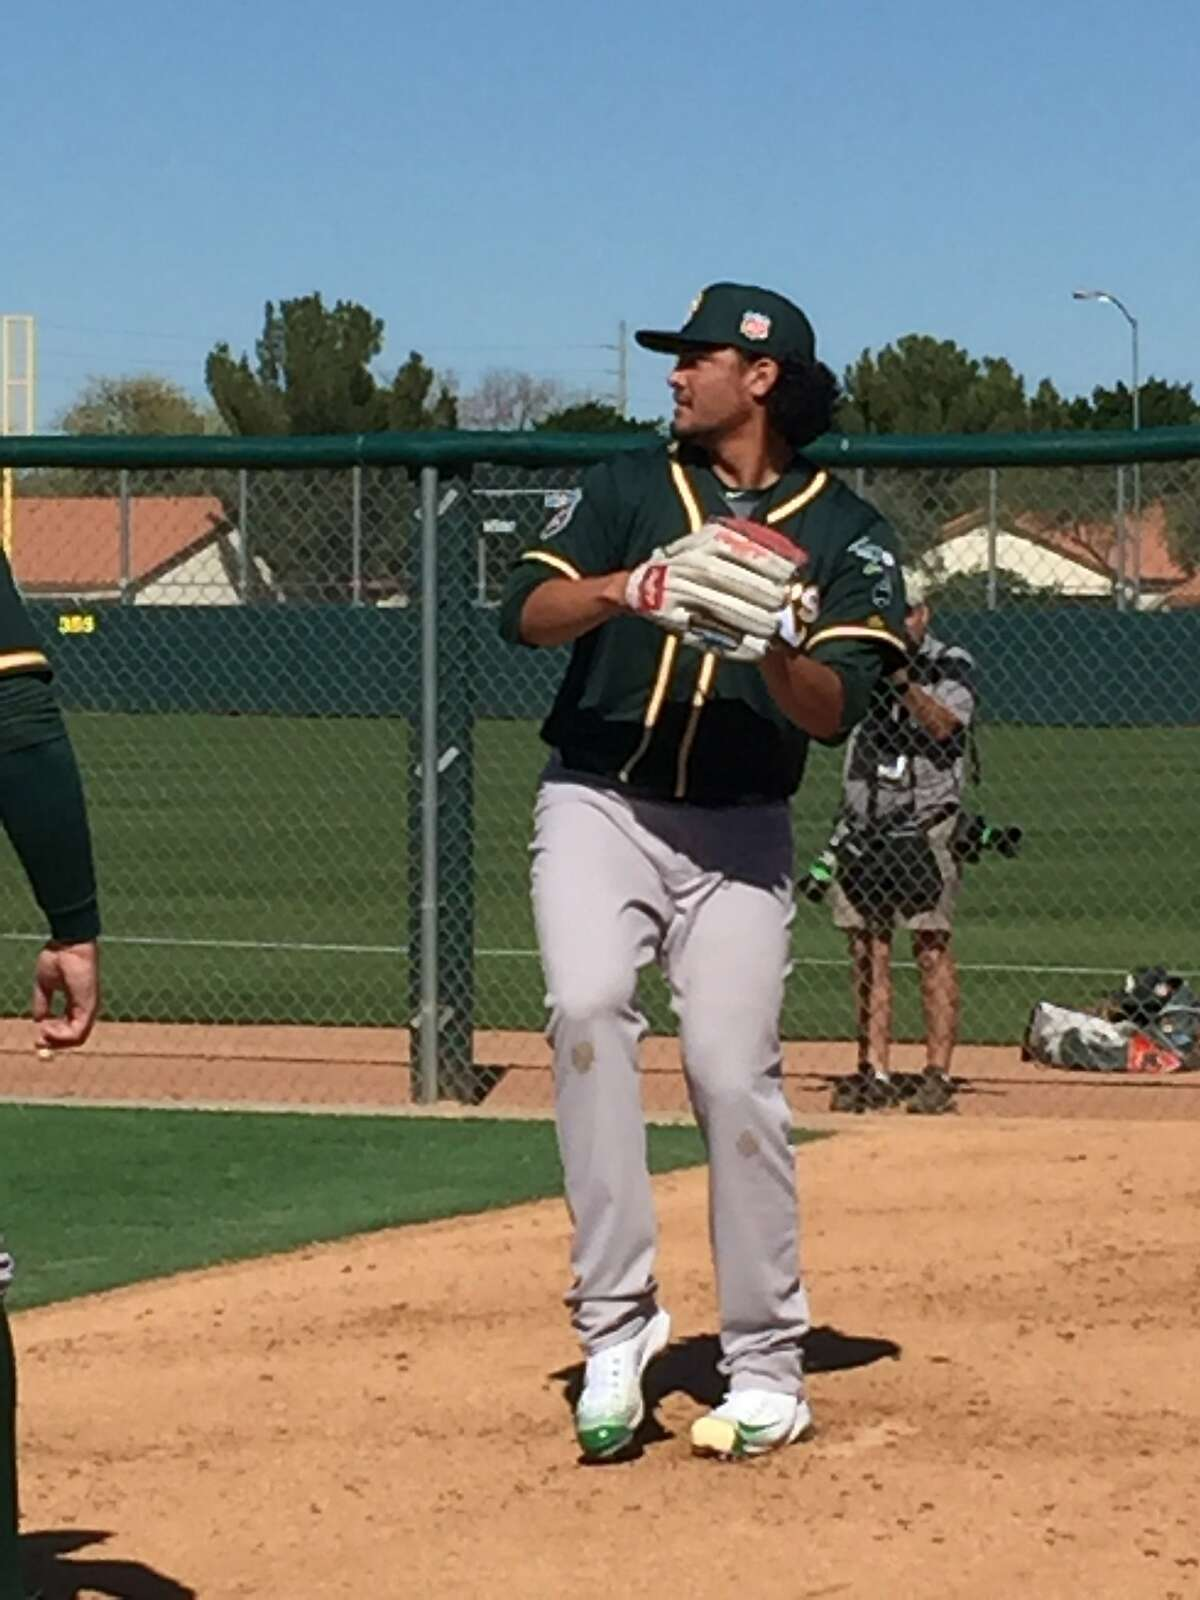 Sean Manaea, the A's top pitching prospect, throws a bullpen session on the first day of the team's camp in Mesa, Ariz.